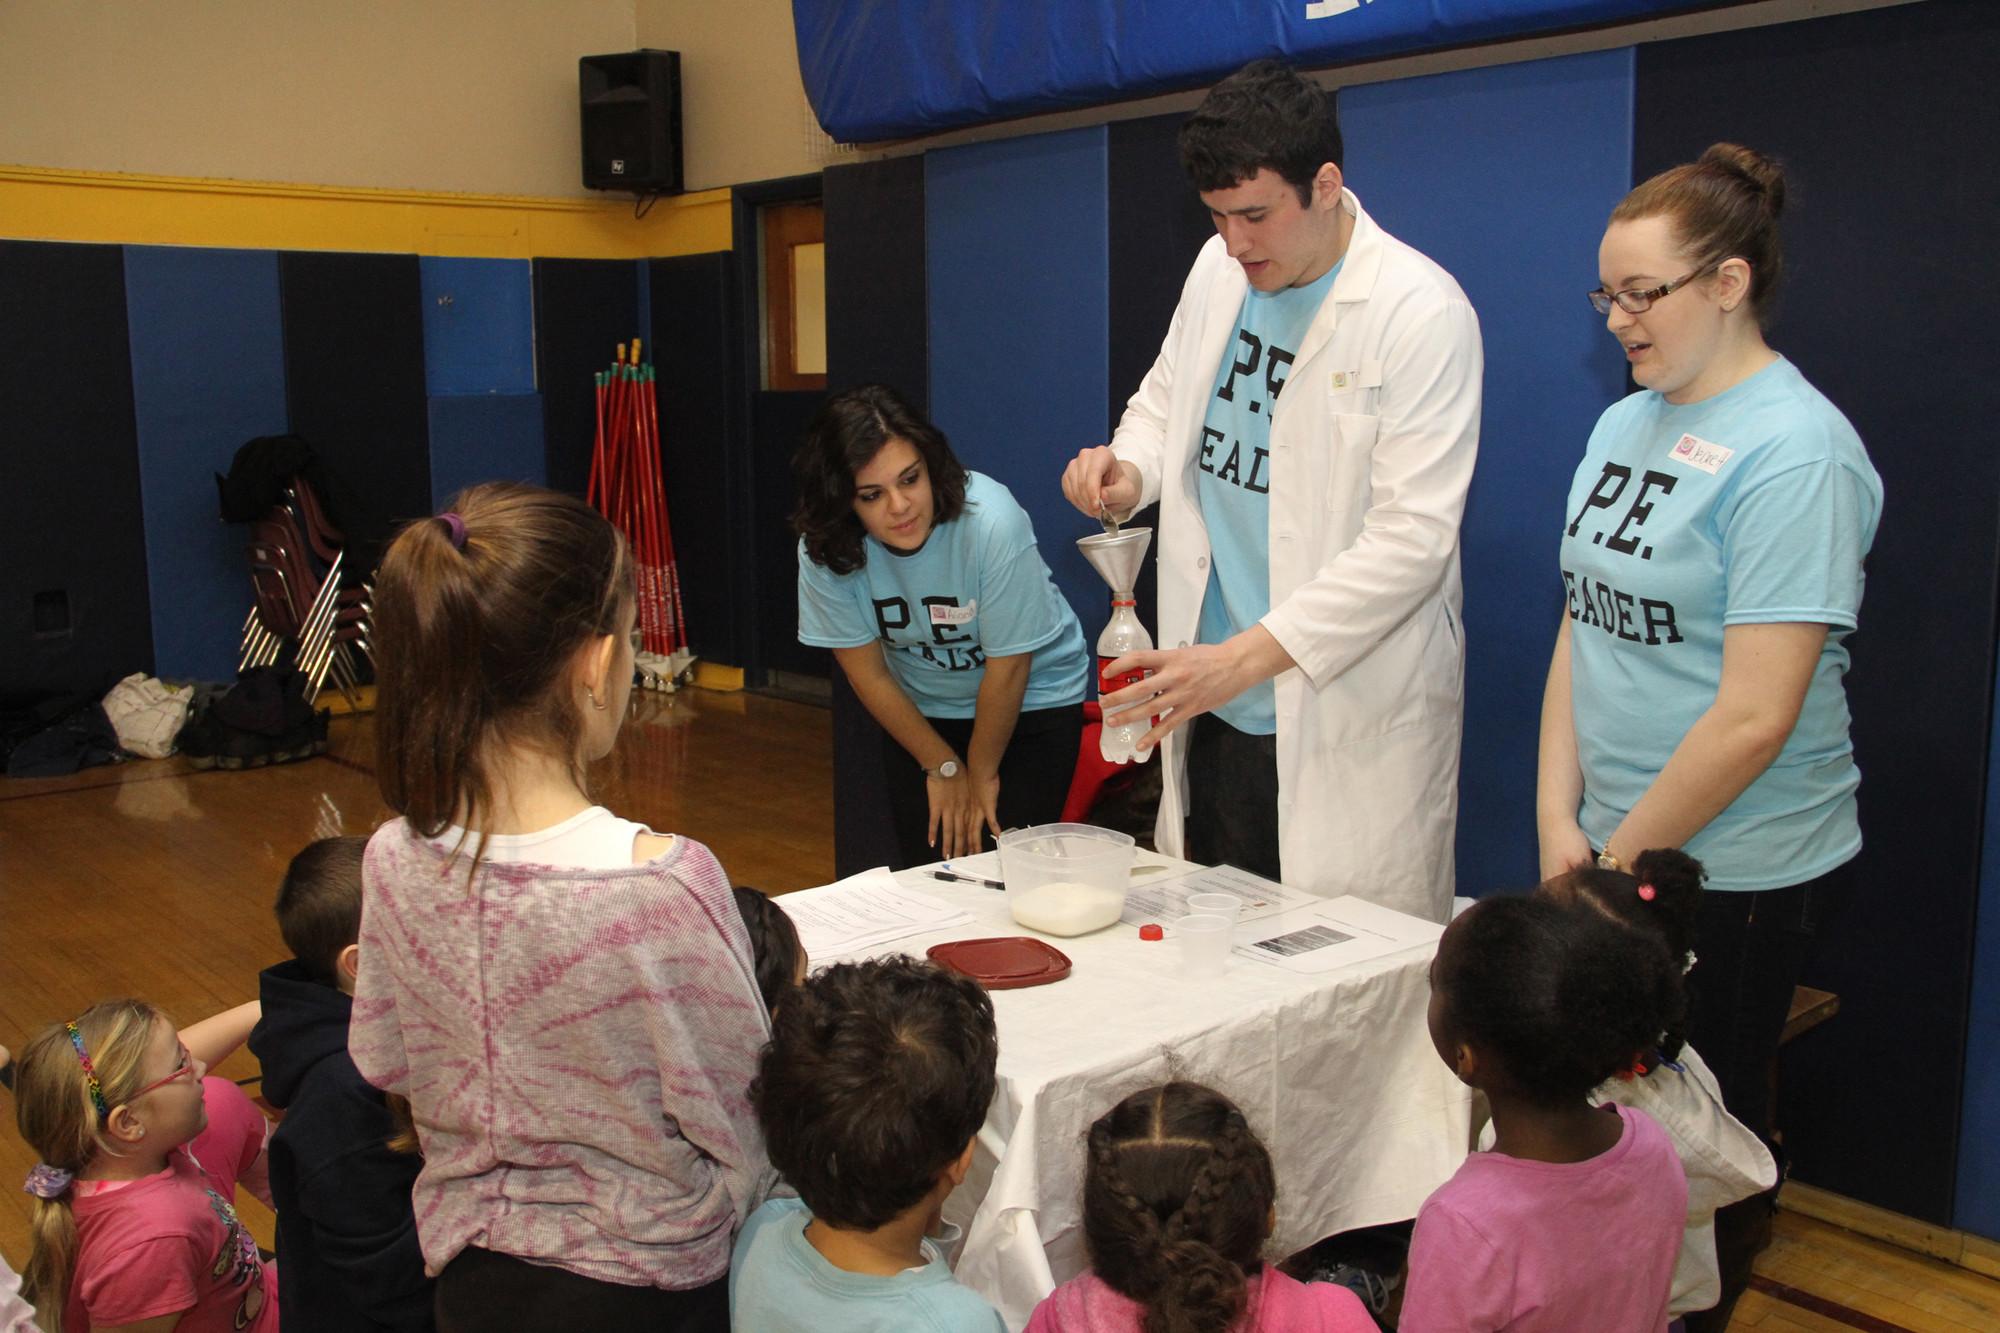 North students Ariana Ward, Tim Sarro and Jeanette Freeman demonstrated the amount of sugar in different drinks.